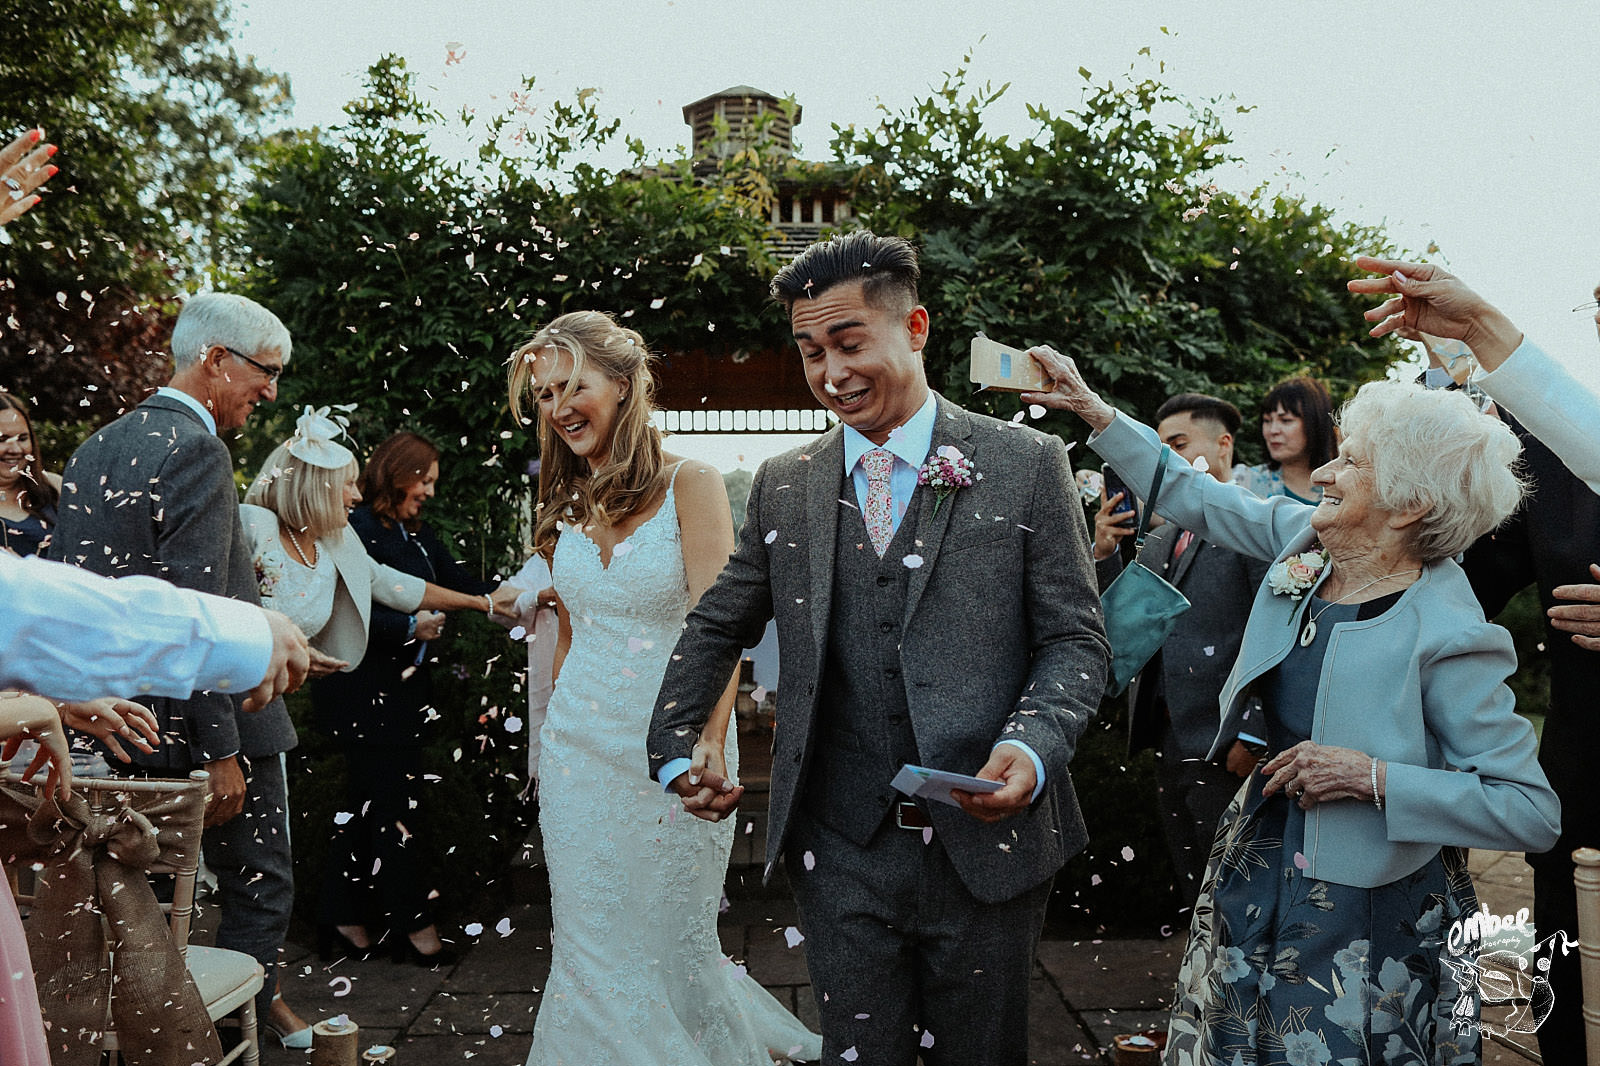 guests throw confetti all over bride and groom